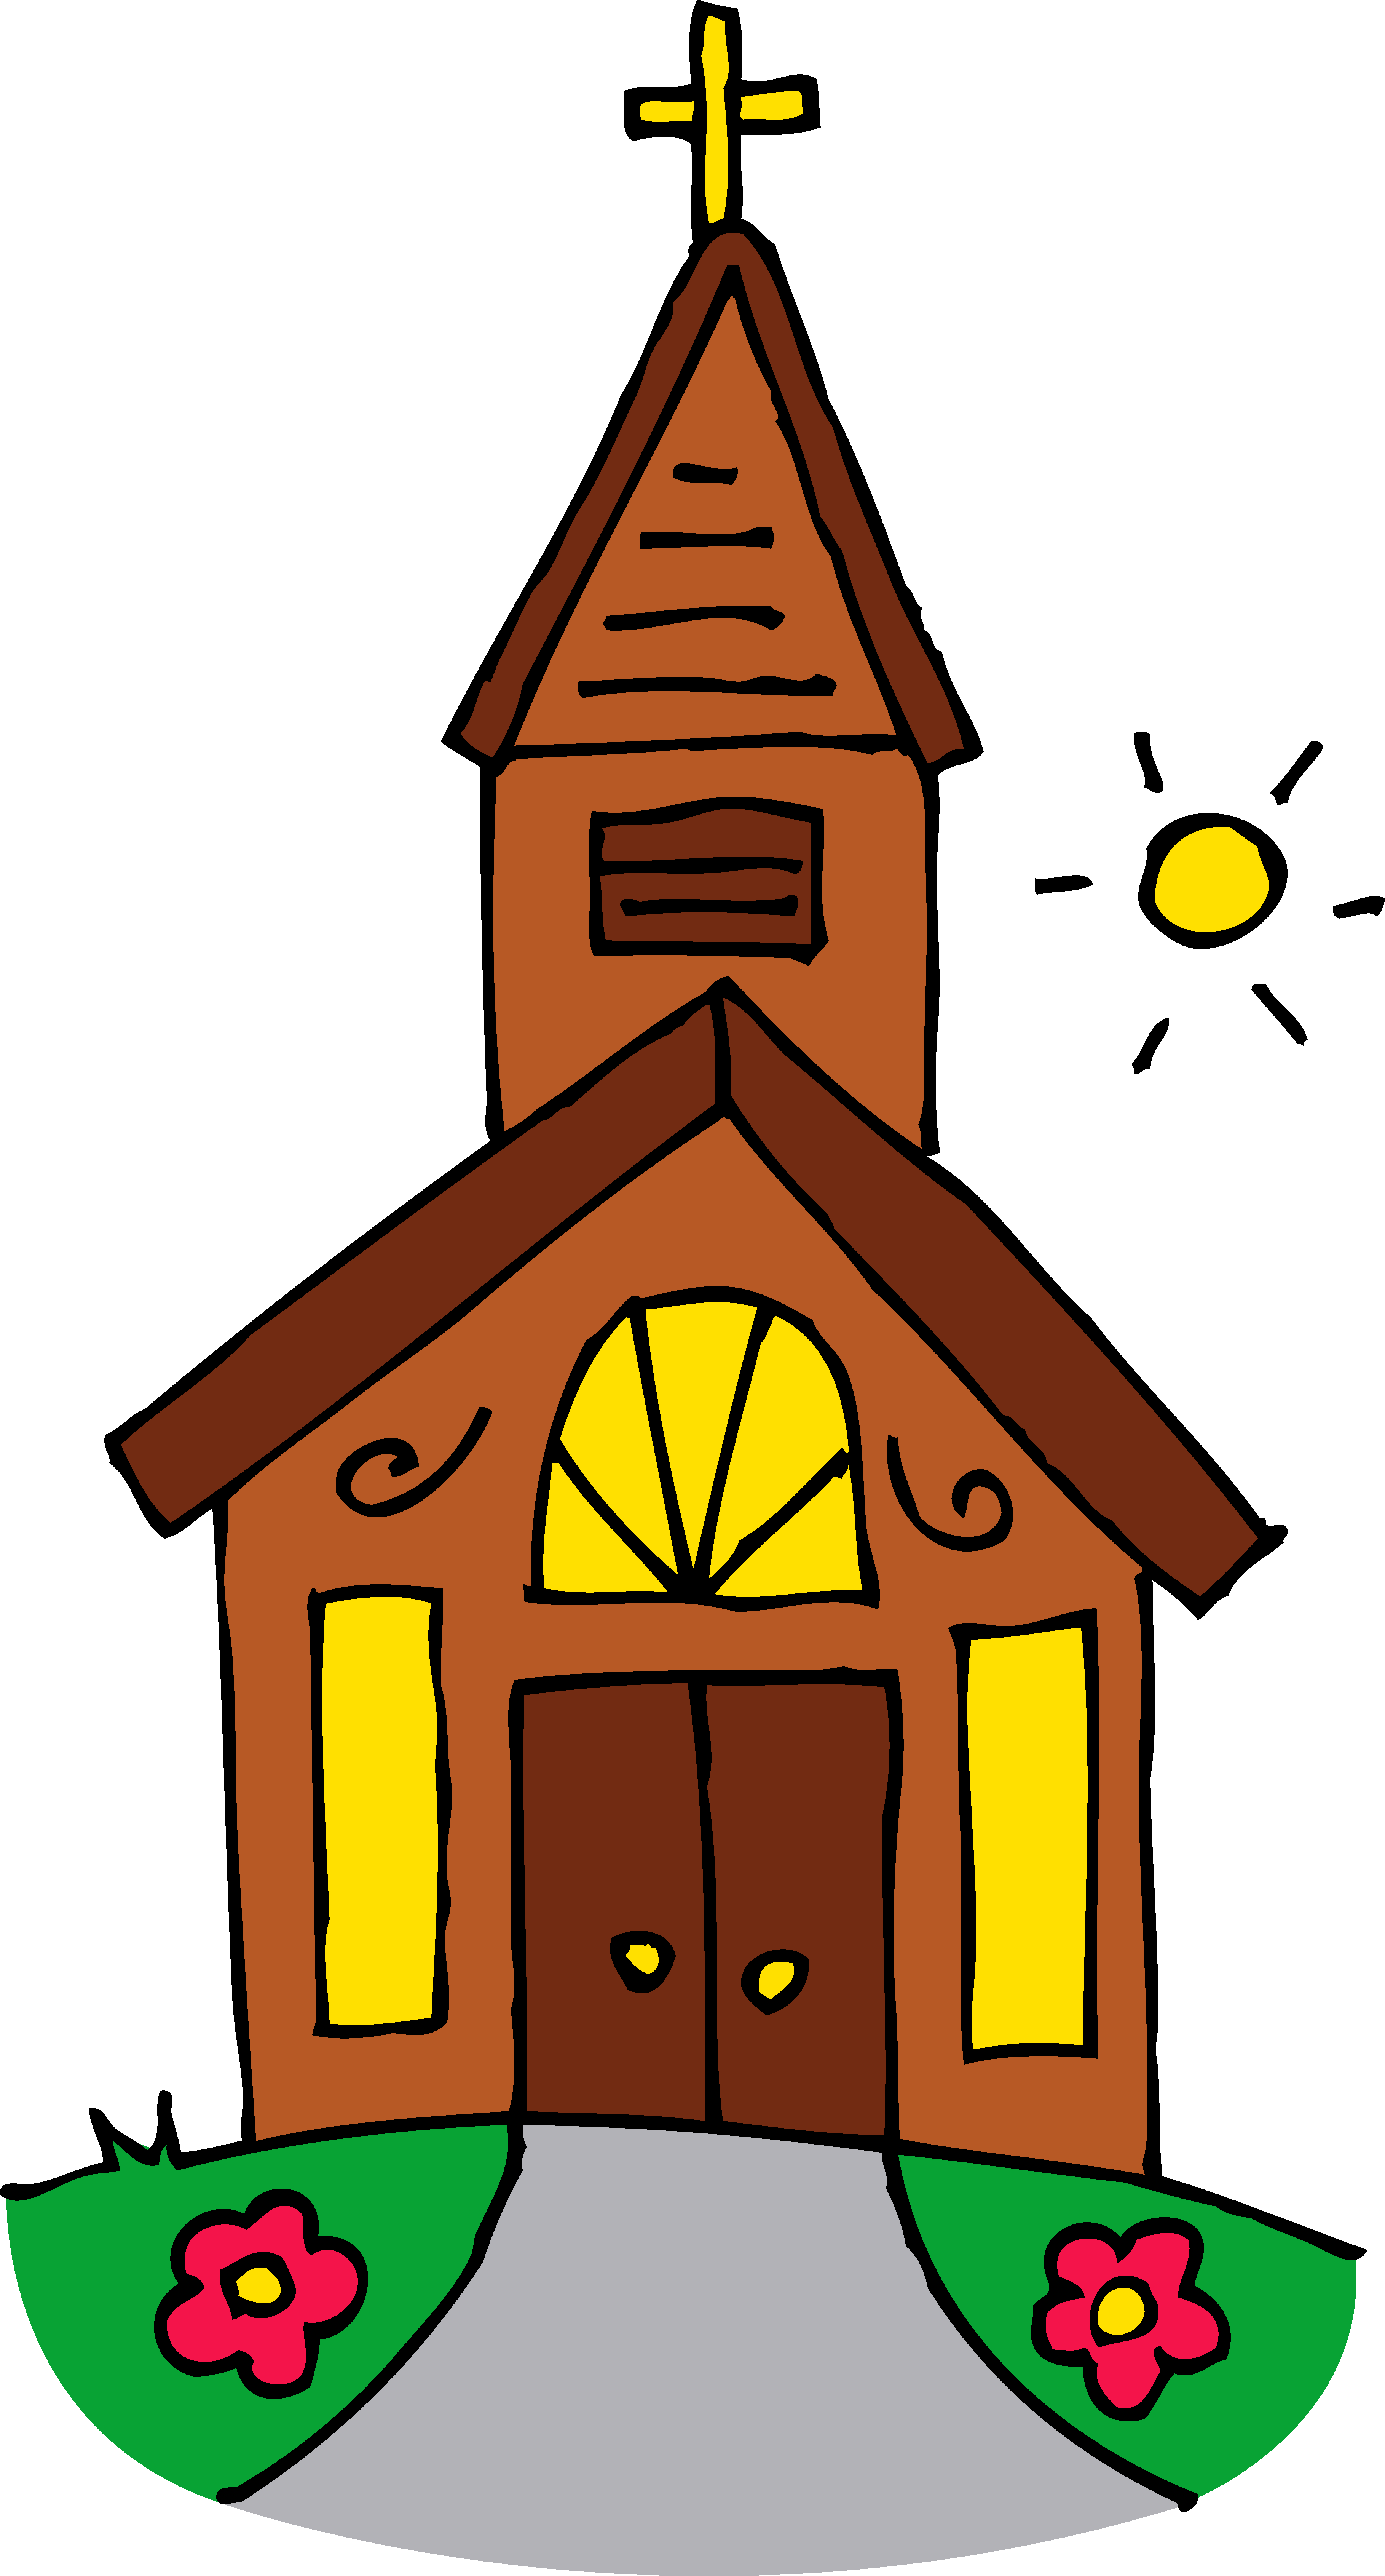 Church building work clipart.